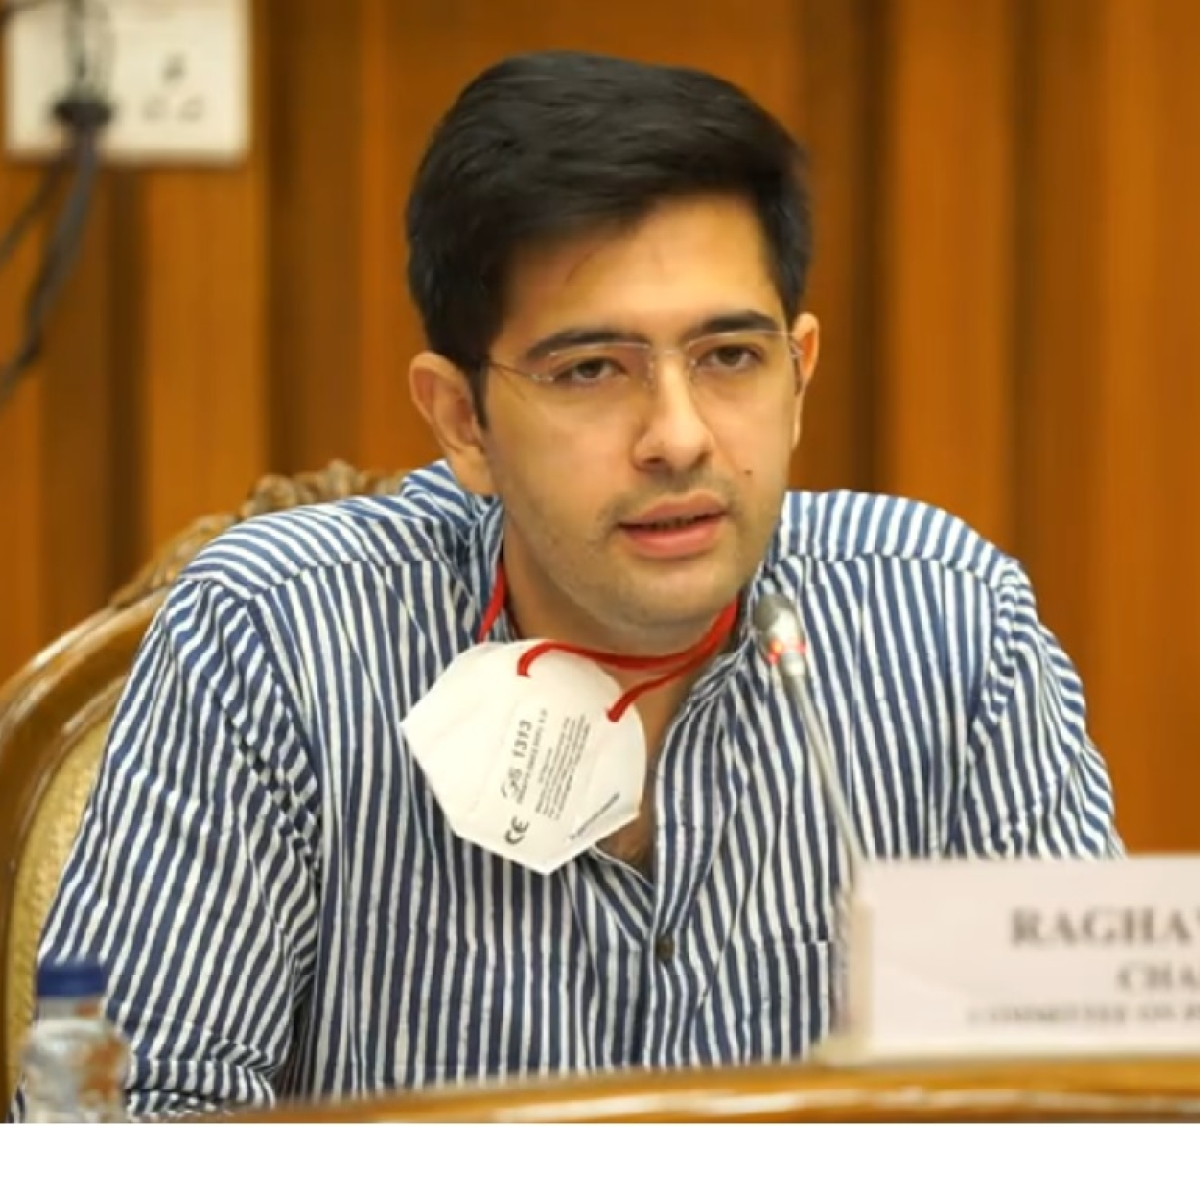 Delhi received only 44% of total oxygen requirement, says AAP's Raghav Chadha